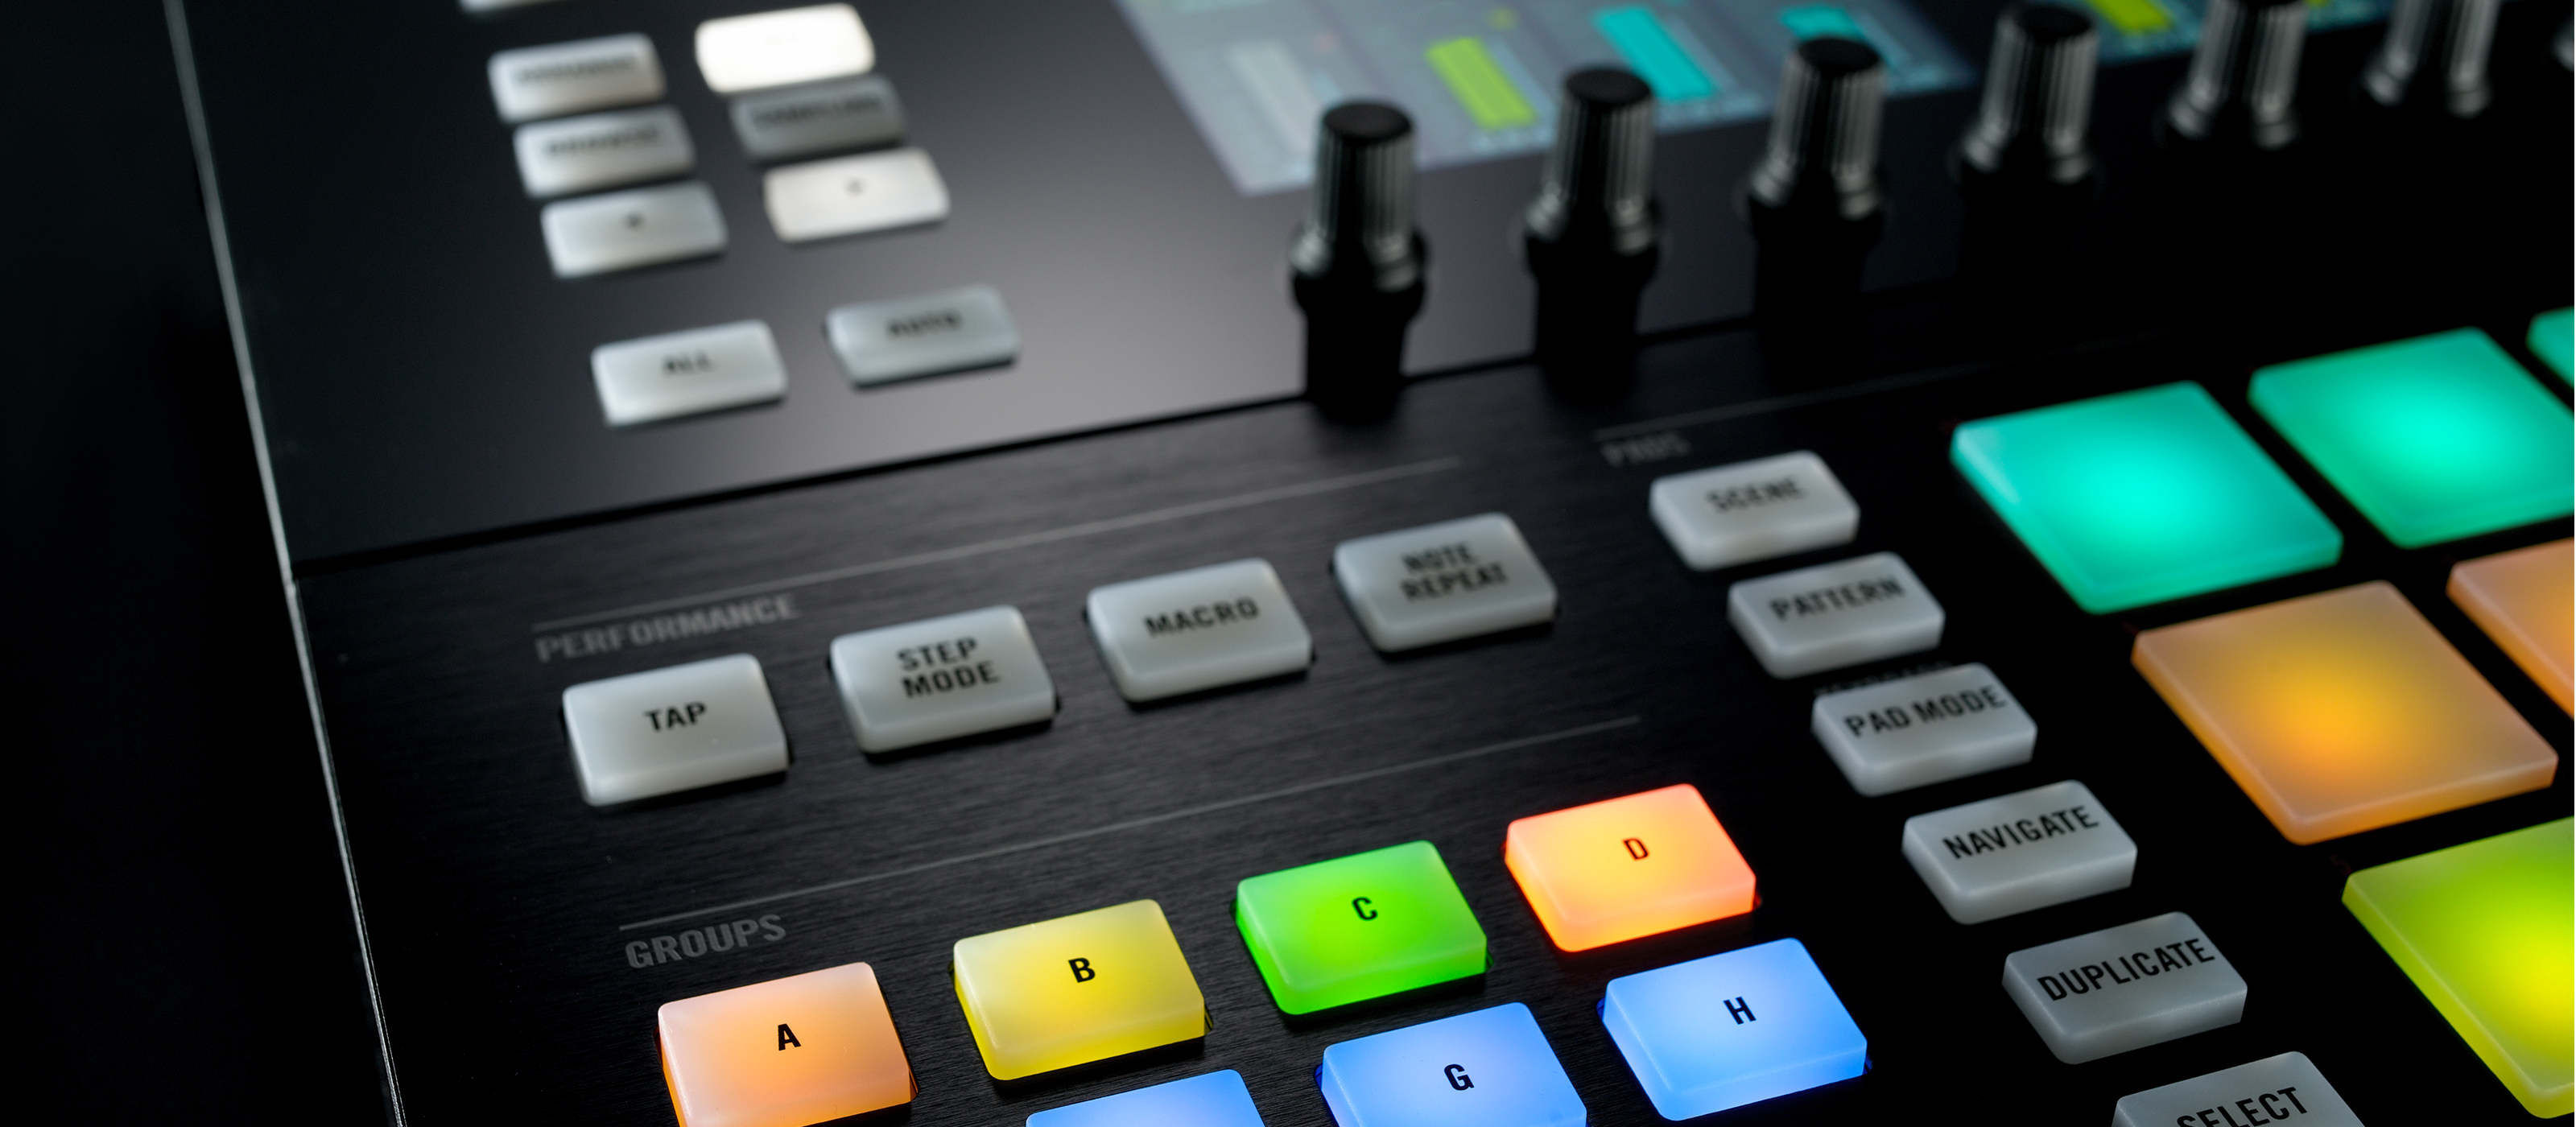 Maschine Production Systems Maschine Studio Products